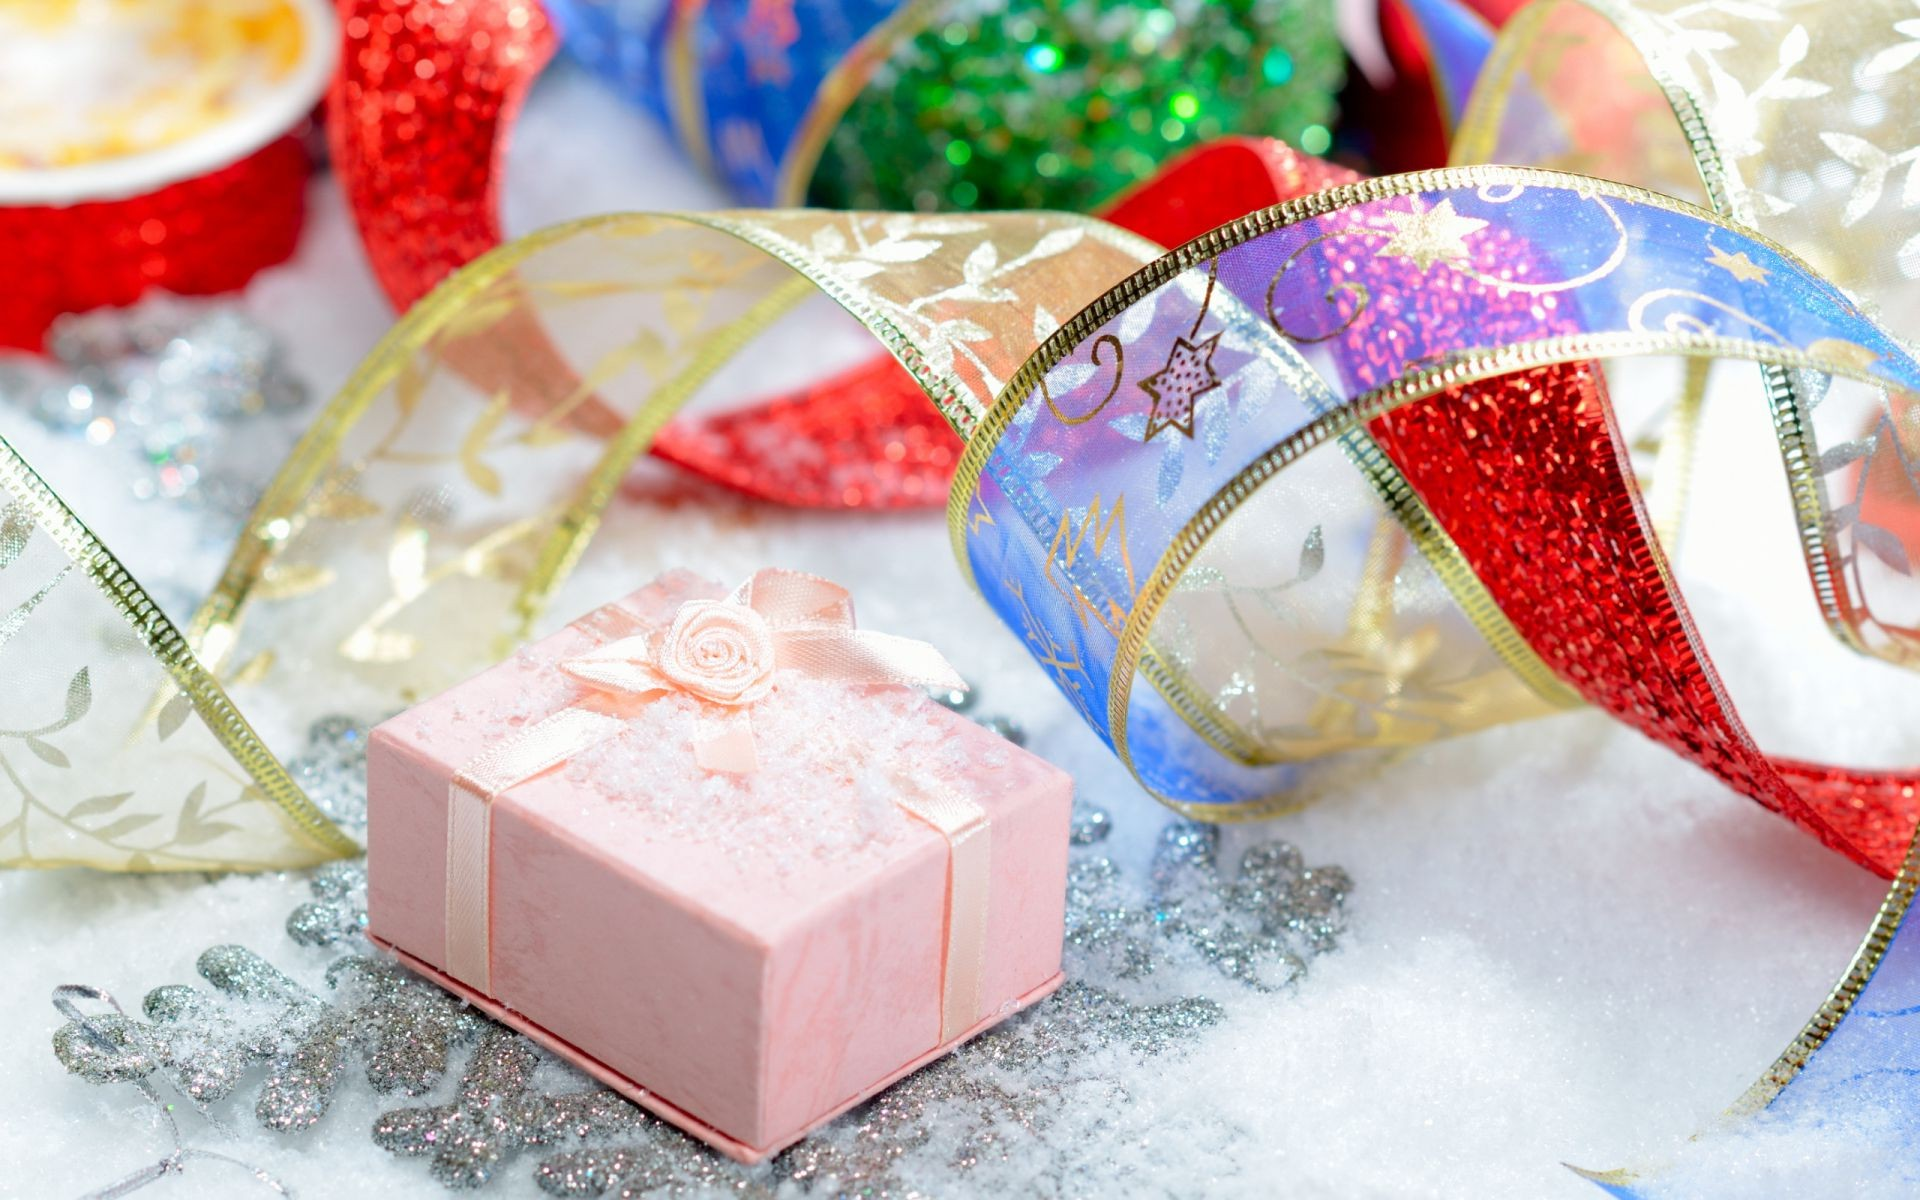 new year thread christmas celebration bow gift decoration box birthday winter shining party surprise desktop gold anniversary luxury